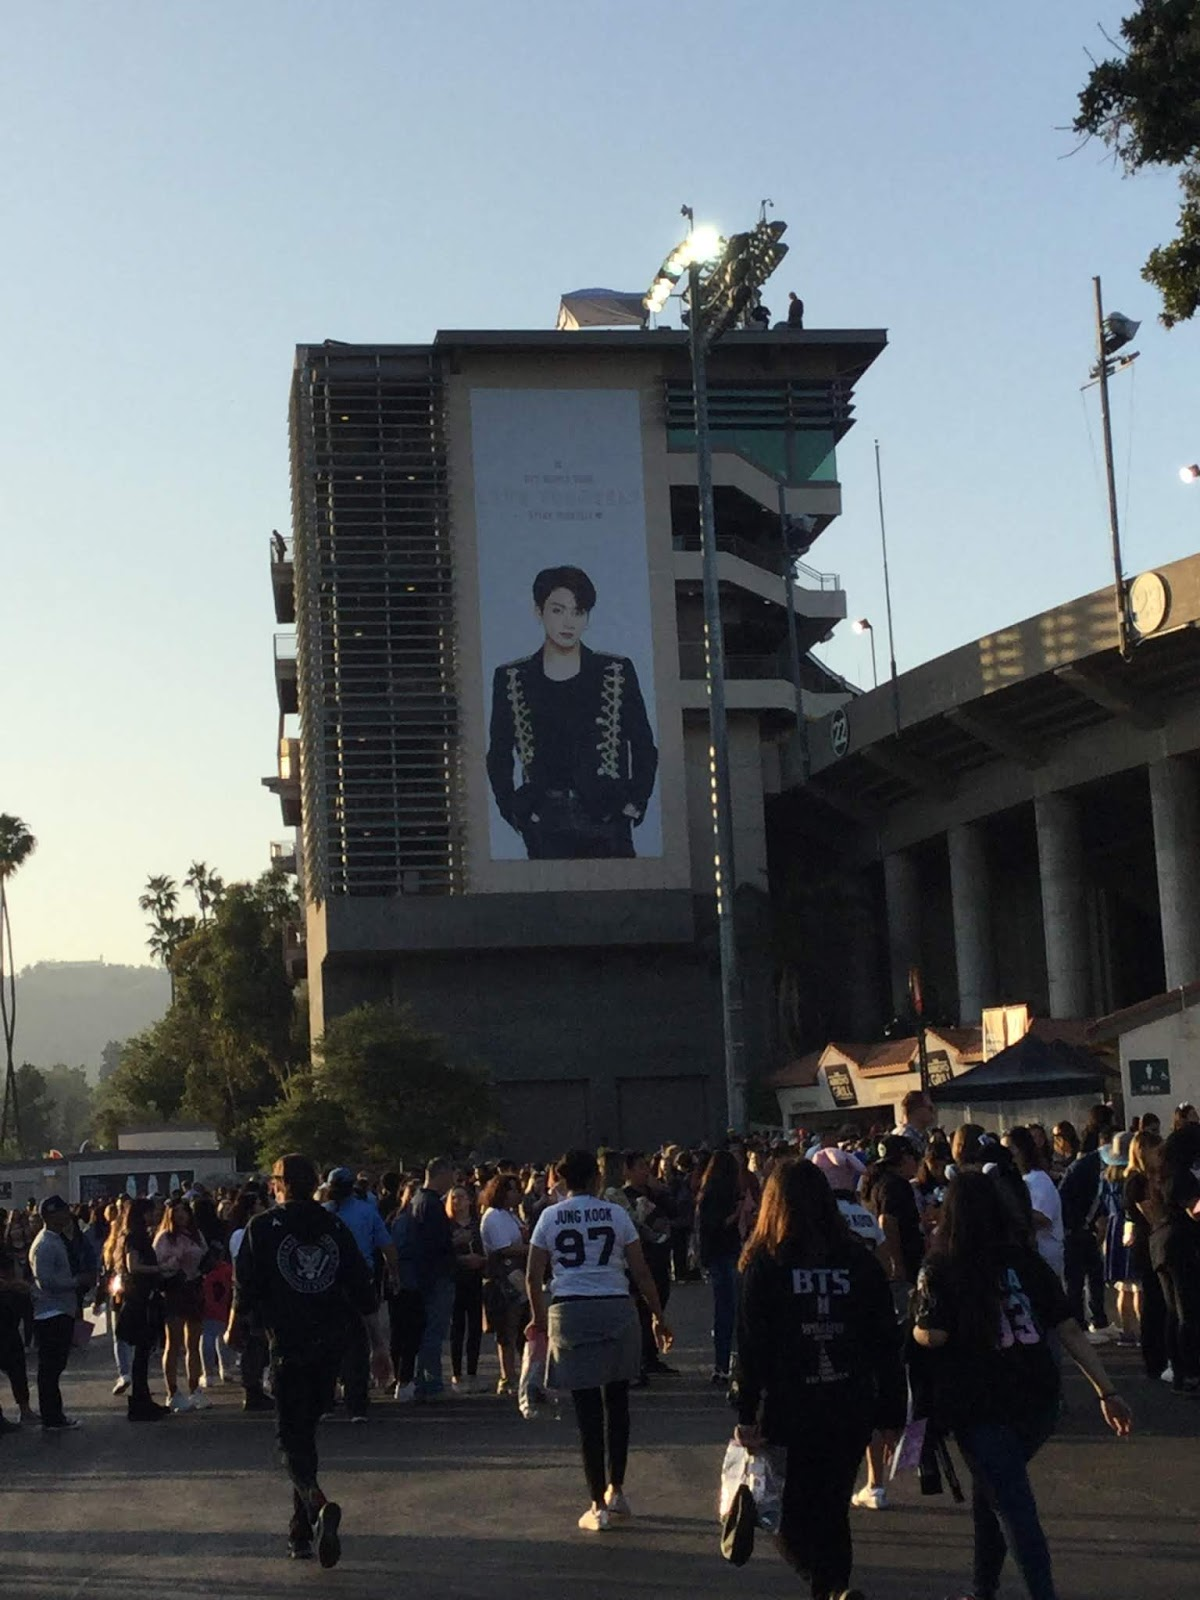 Filmi Girl!: BTS: Speak Yourself Tour at the Rose Bowl, May